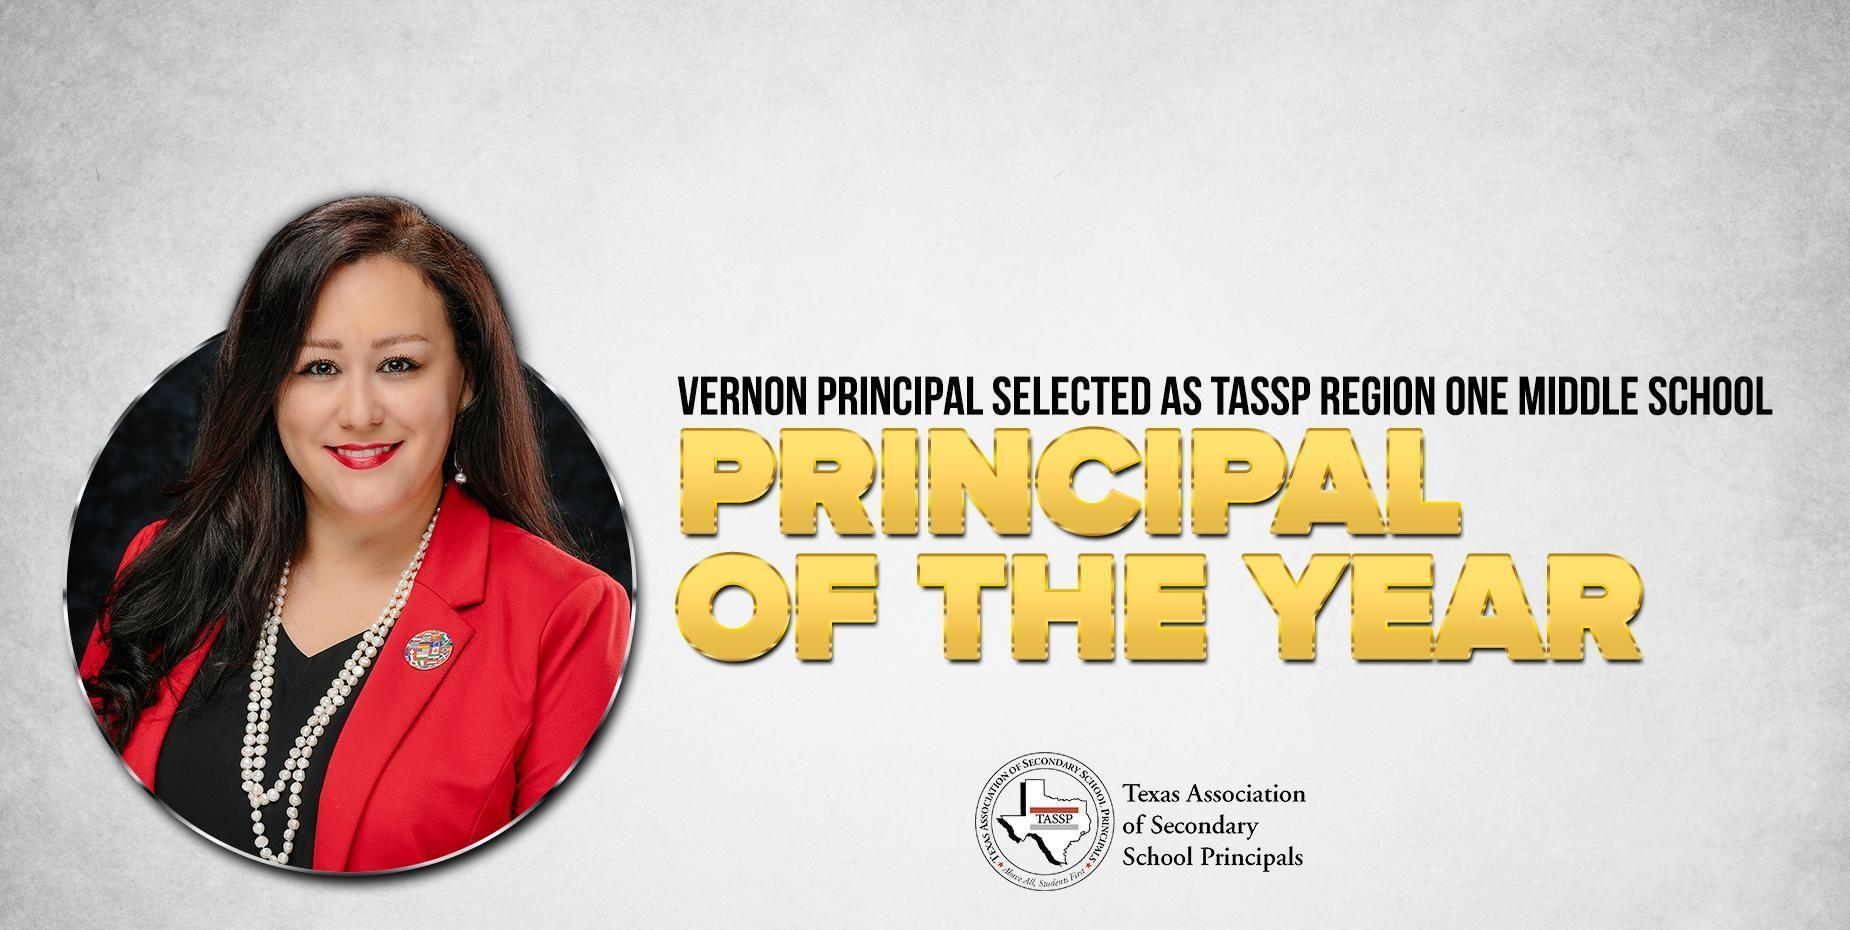 image shows principal of the year Arely Tamez.